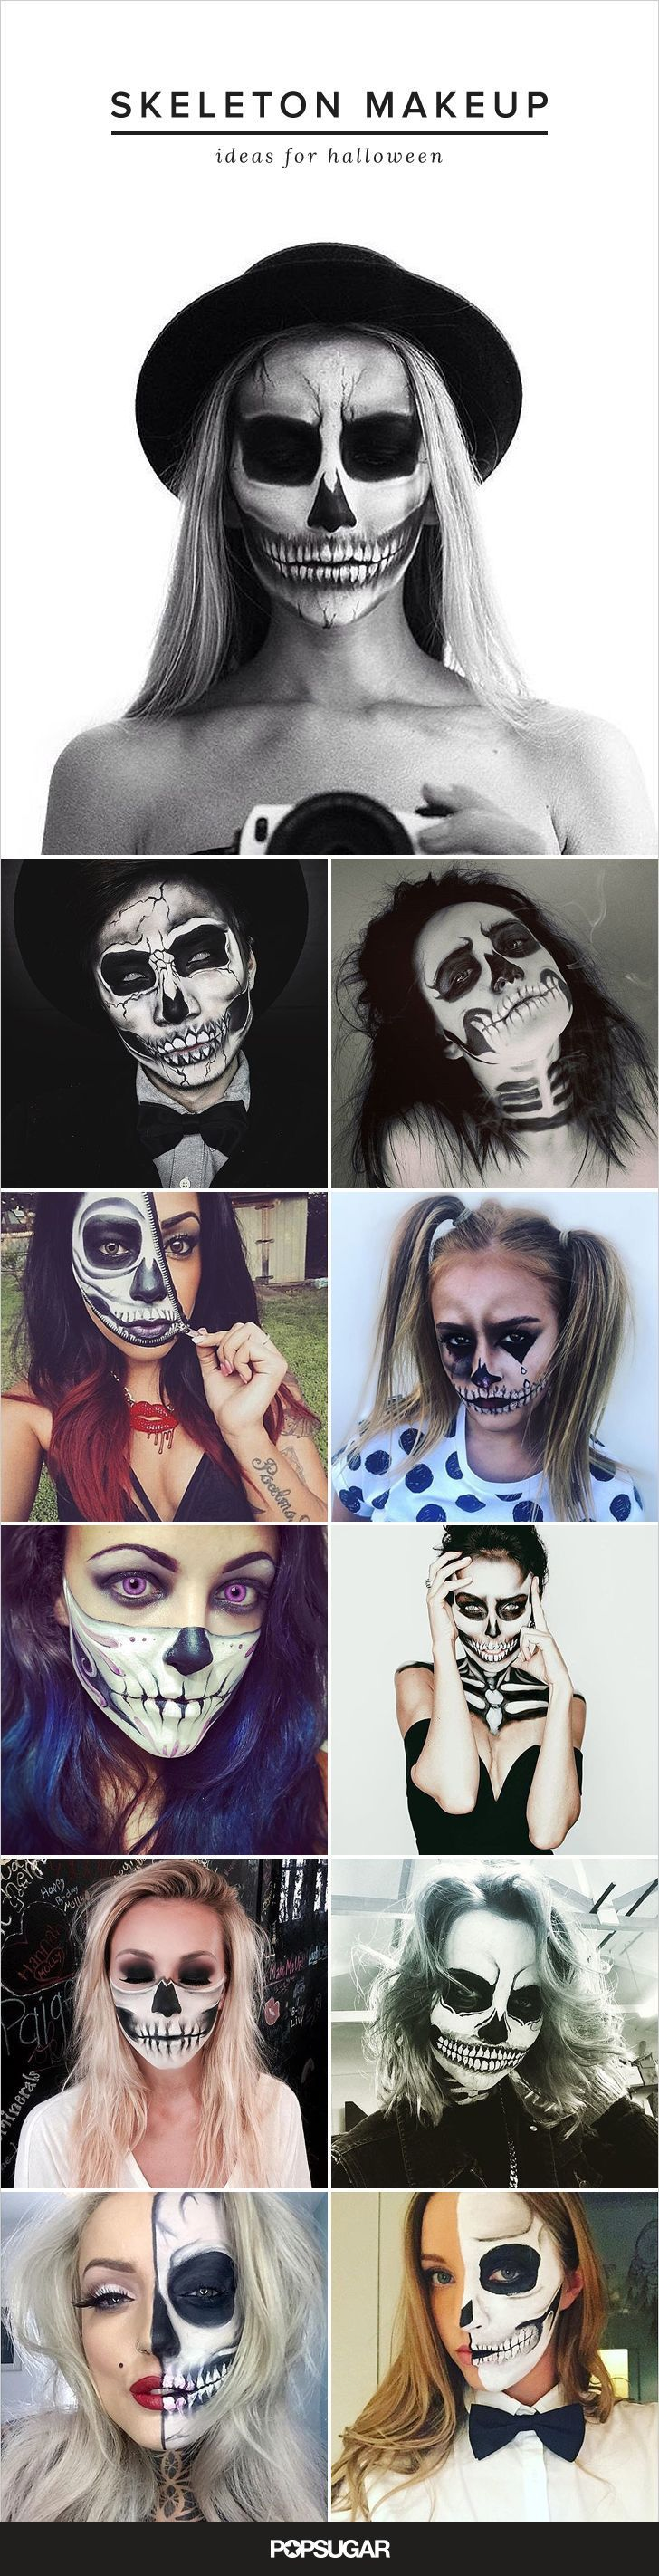 """One of our favorite Halloween looks pulls from an iconic """"scary"""" image: the…"""